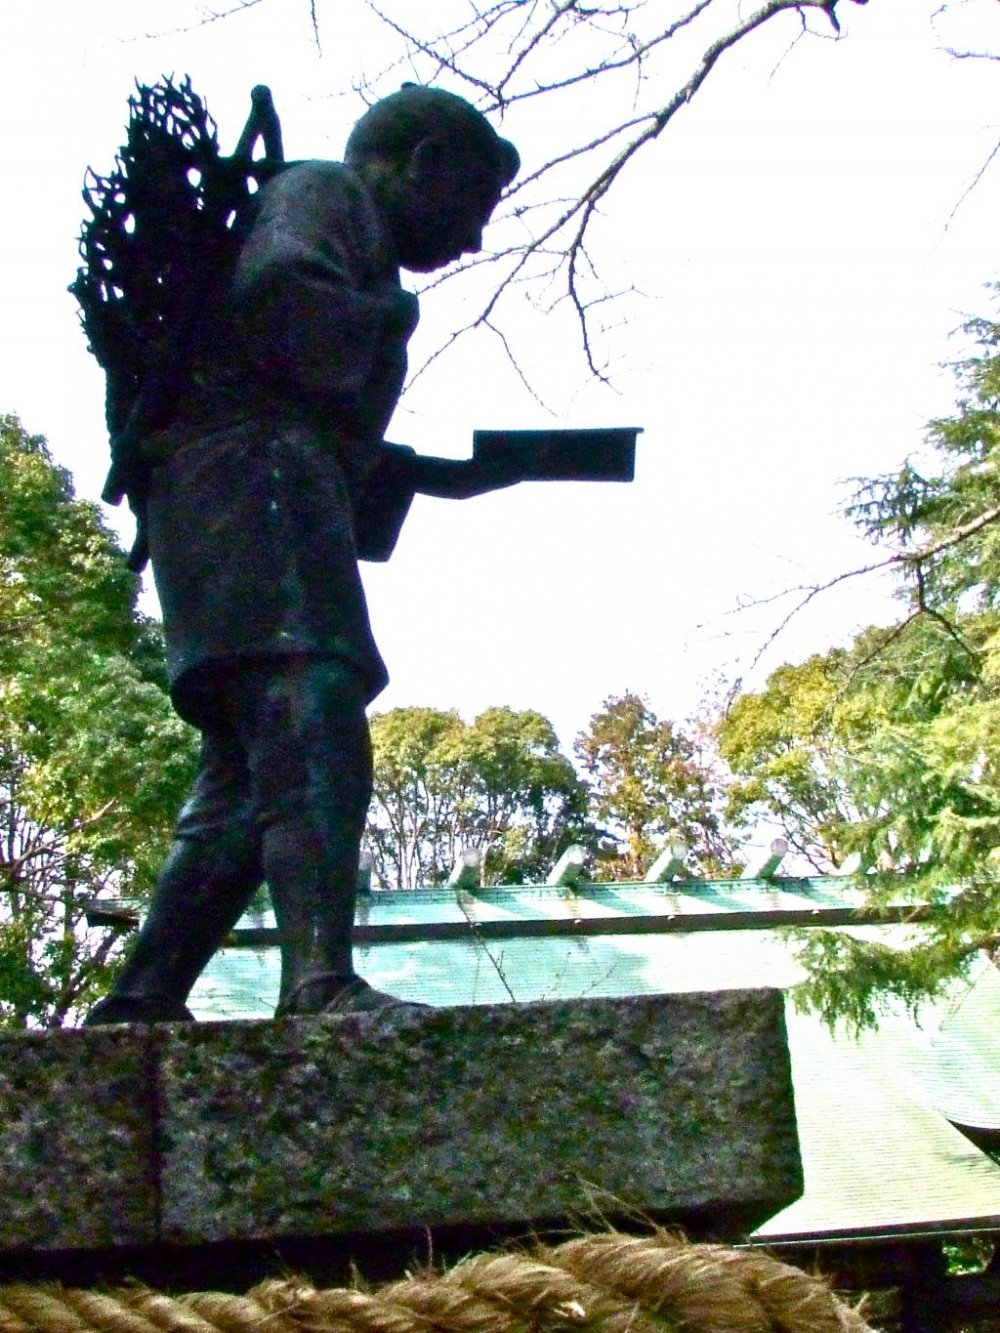 This statue of Ninomiya when he was a young boy can be found in elementary schools all over Japan, and is a symbol of diligence, andthirst for knowledge